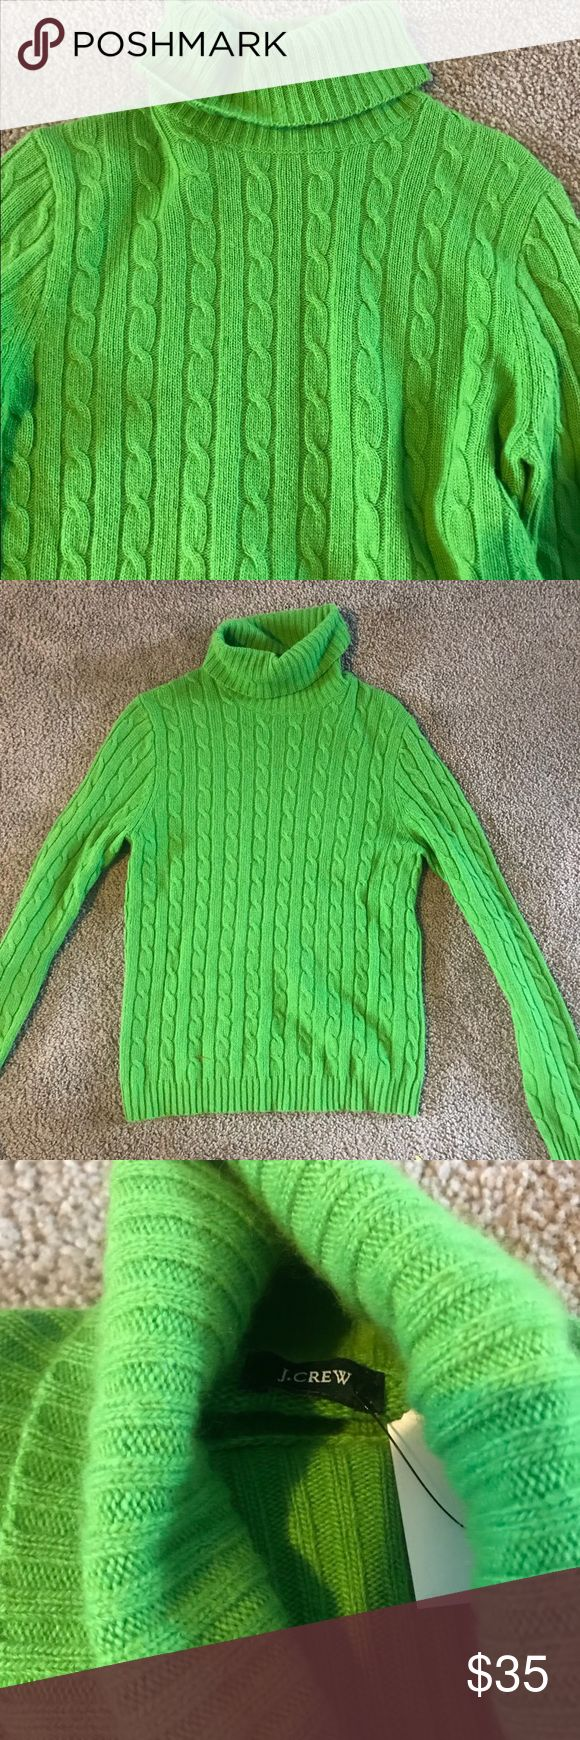 J Crew Lime green turtleneck sweater SZ medium J Crew Lime green turtleneck sweater SZ medium . This is in like new condition with no signs of wear . J Crew Sweaters Cowl & Turtlenecks